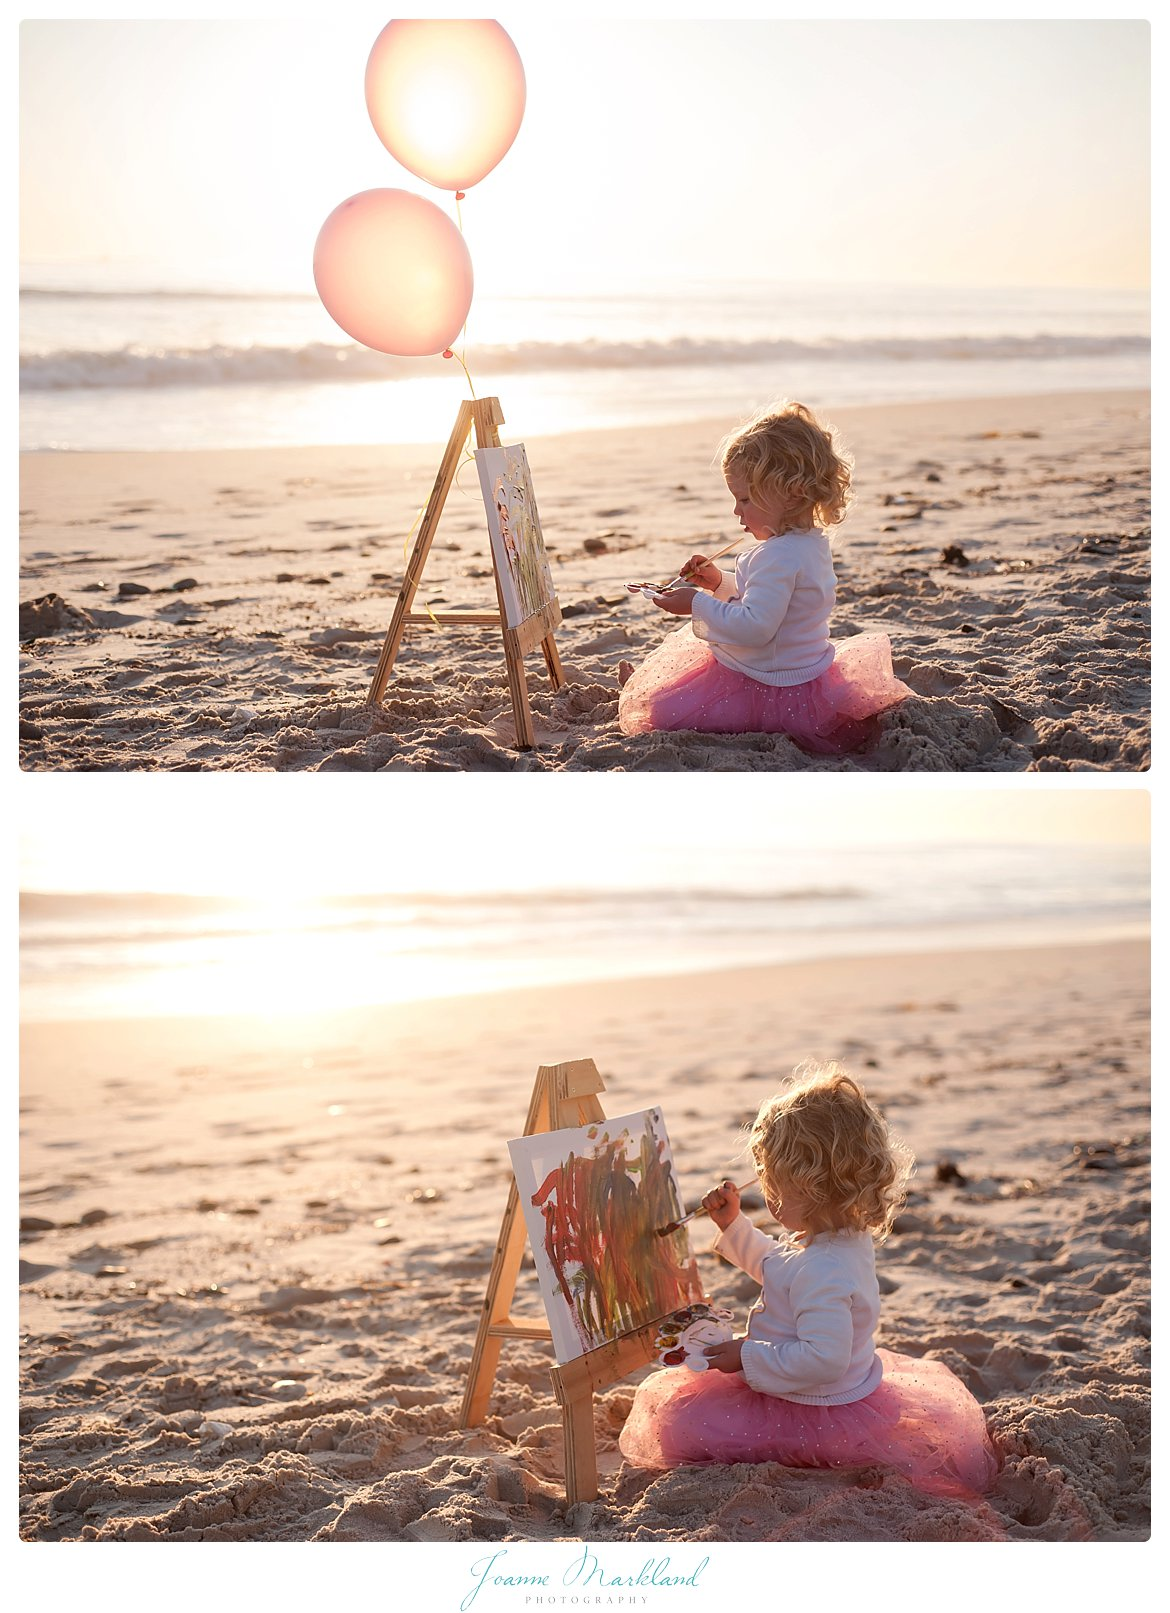 toddler-birthday-portraits-family-photographer-joanne-markland-photography-cape-town-009